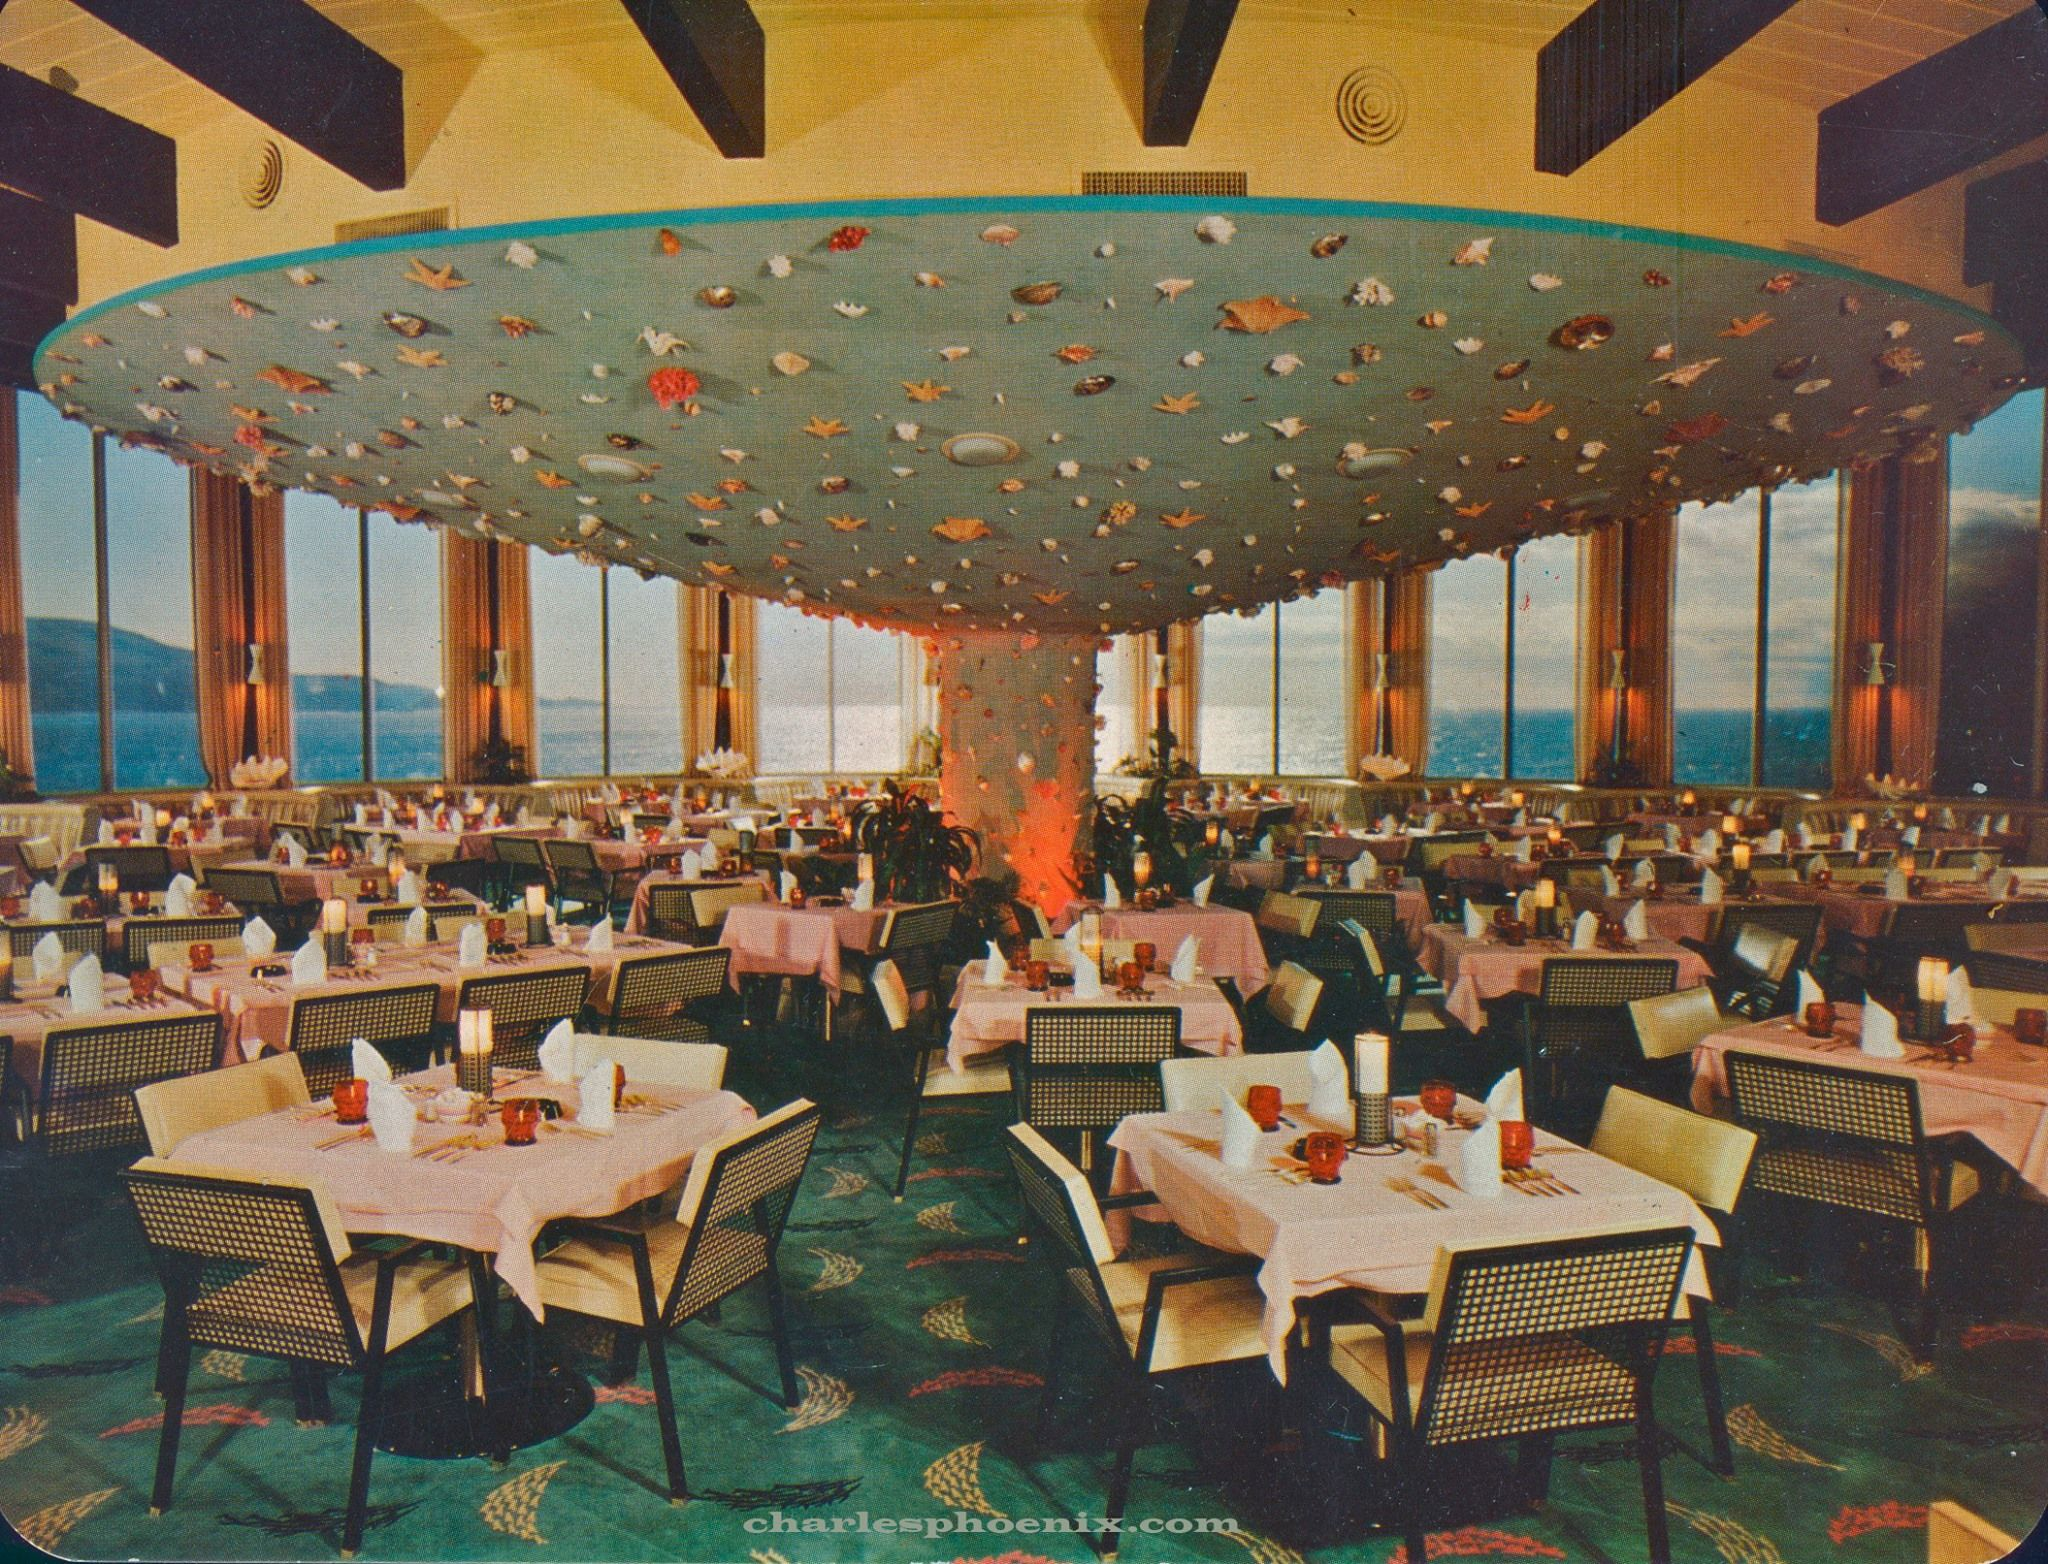 Seashells On The Ceiling At Marineland Restaurant In Palos Verdes Socal 1957